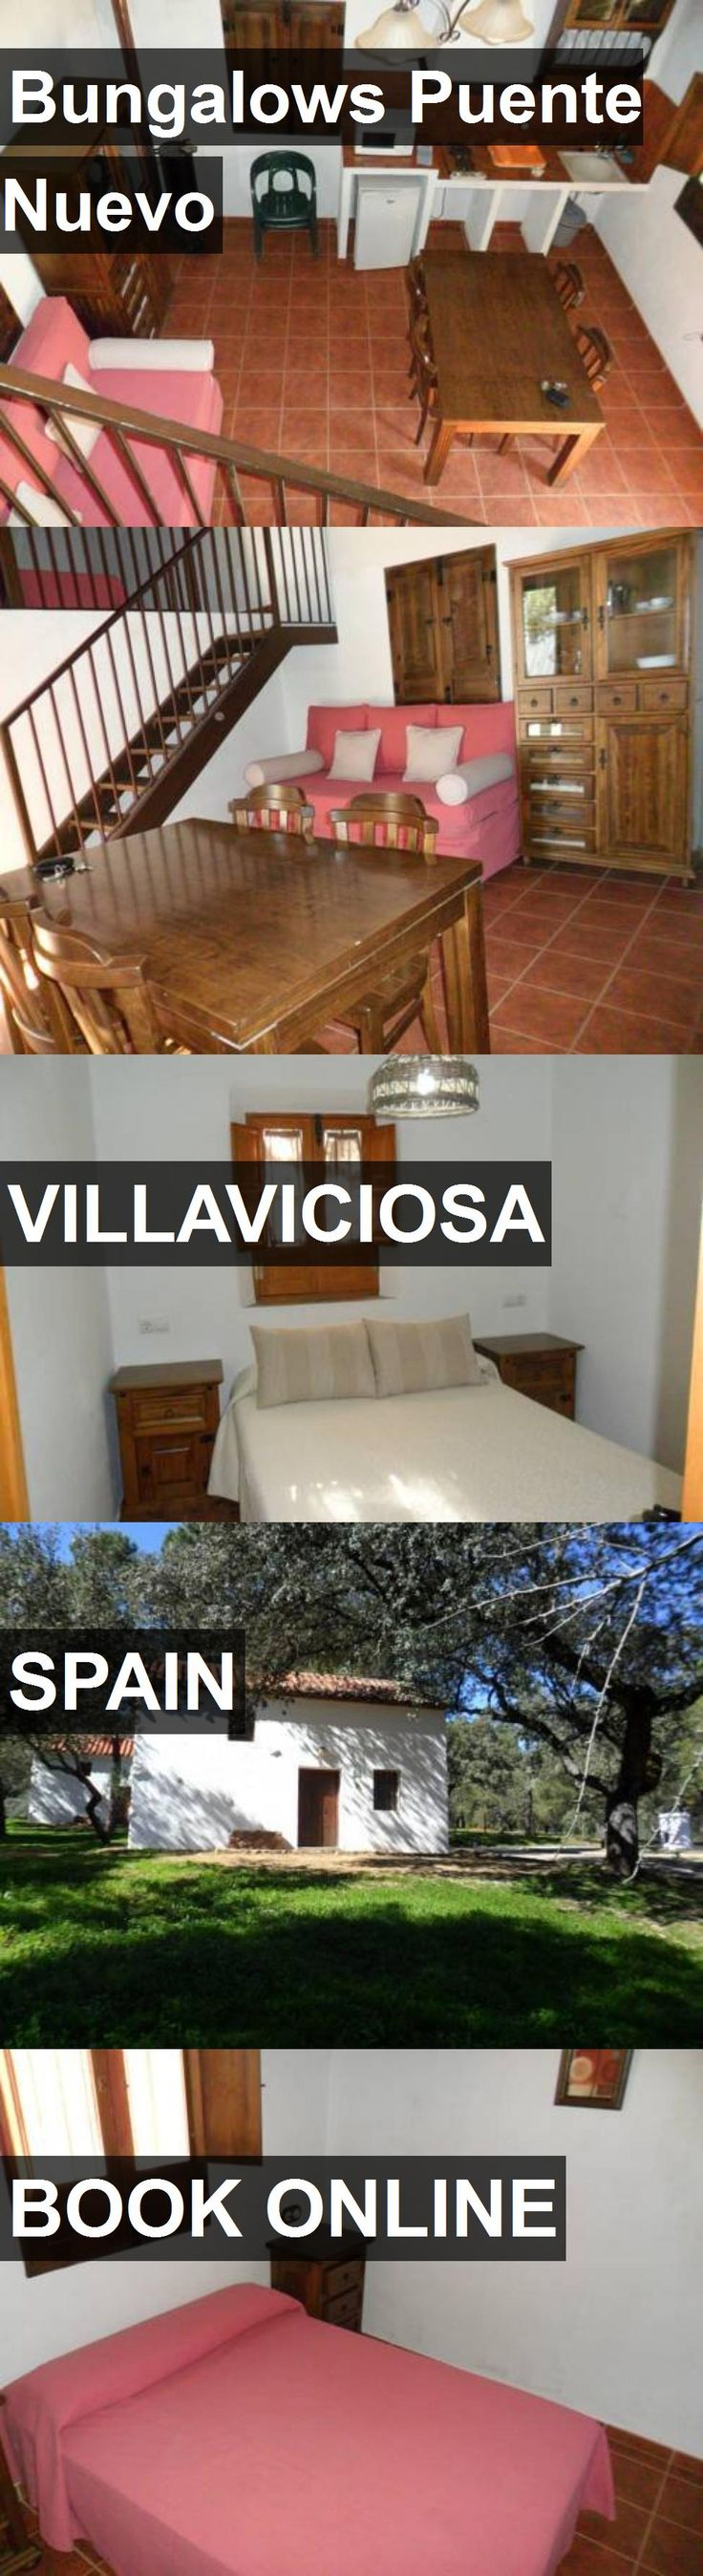 Hotel Bungalows Puente Nuevo in Villaviciosa, Spain. For more information, photos, reviews and best prices please follow the link. #Spain #Villaviciosa #travel #vacation #hotel